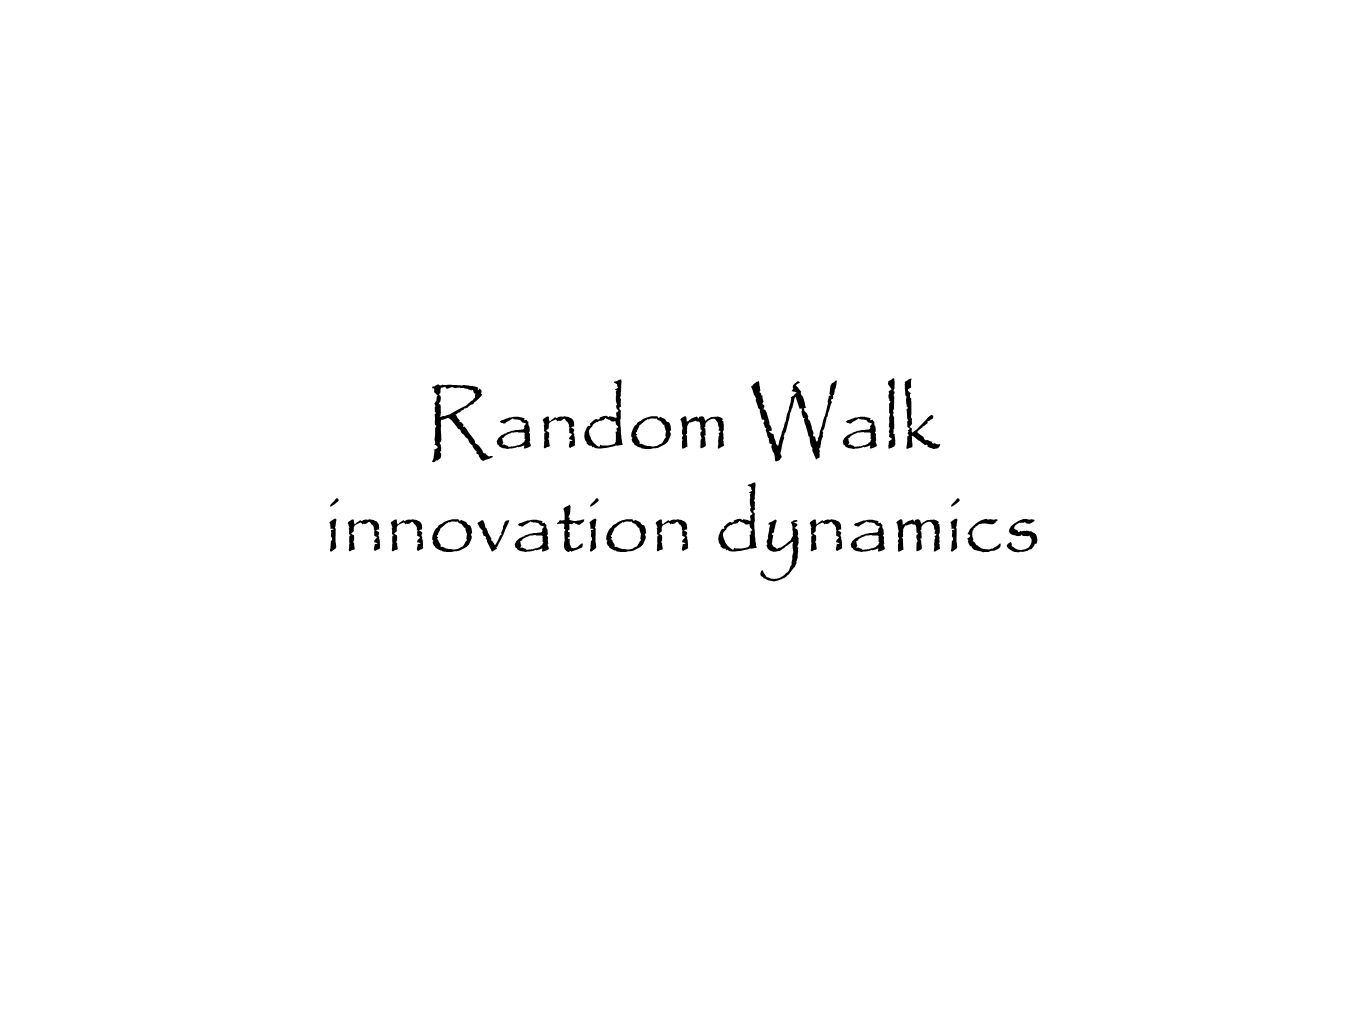 Random Walk innovation dynamics